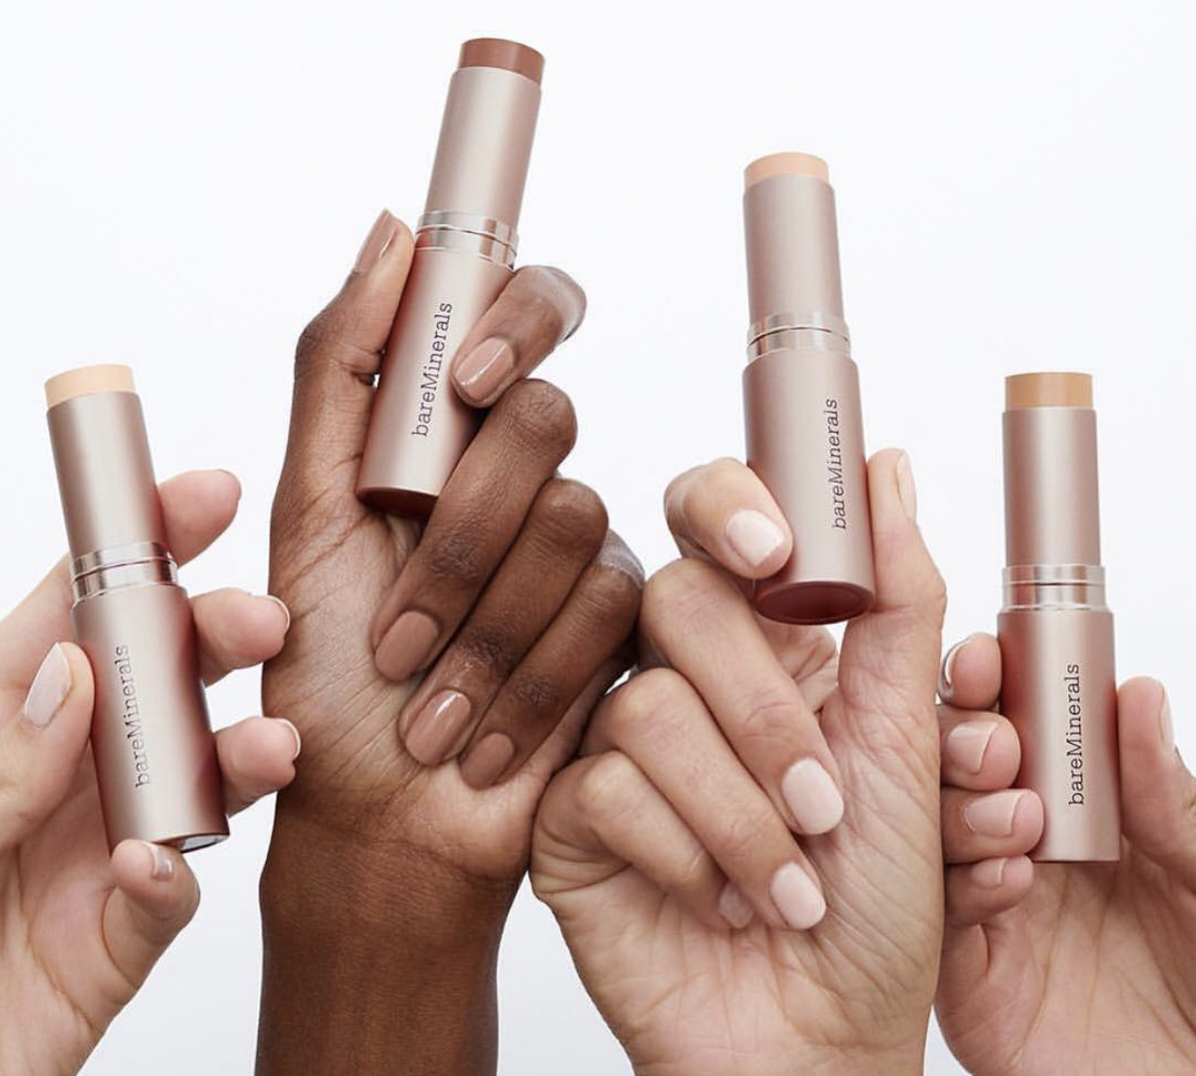 Clean coverage oilfree foundation stick that is water